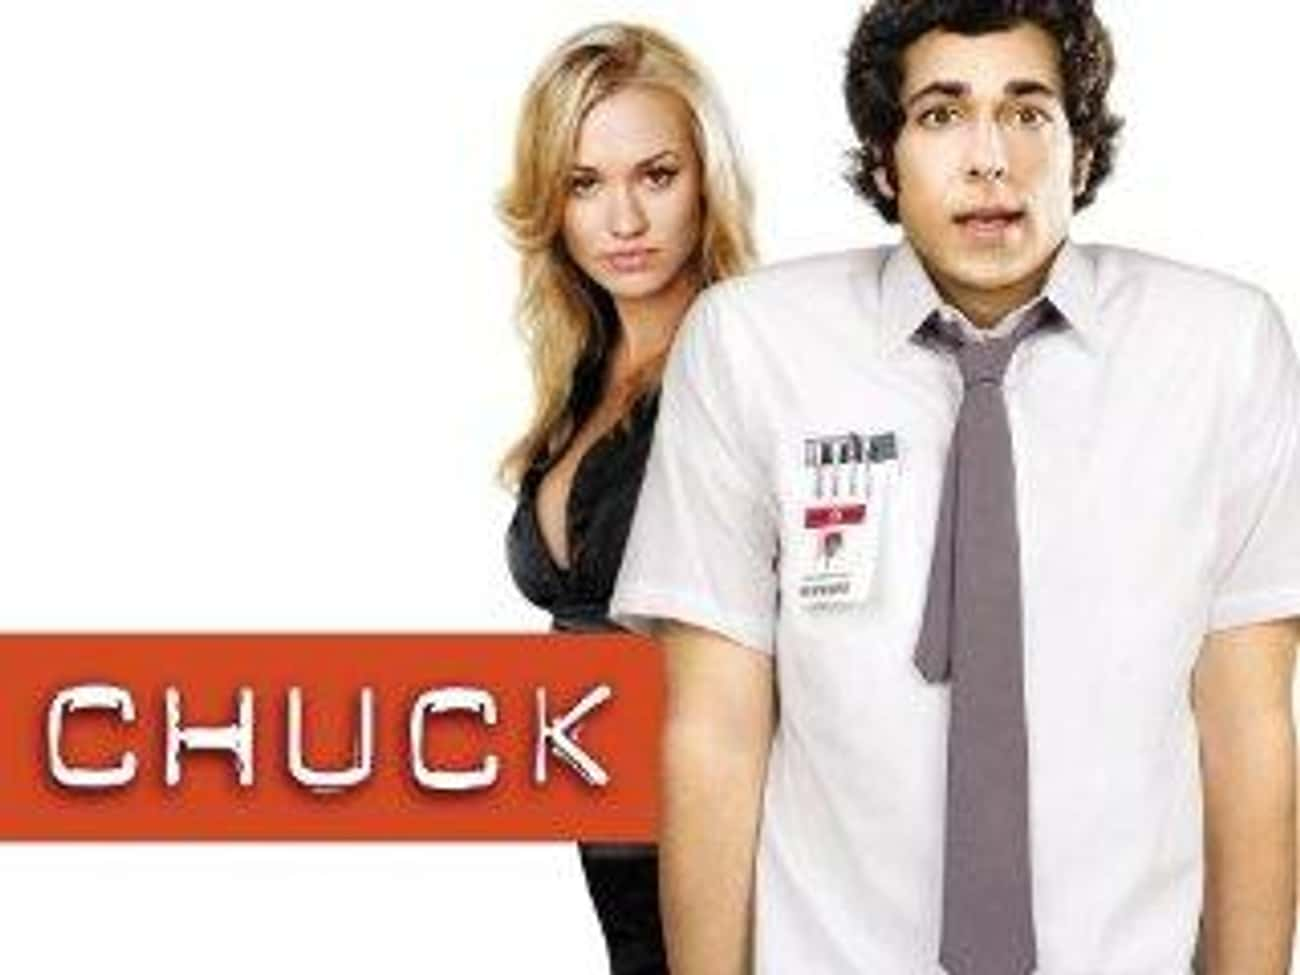 Chuck Season 1 is listed (or ranked) 3 on the list The Best Seasons of Chuck